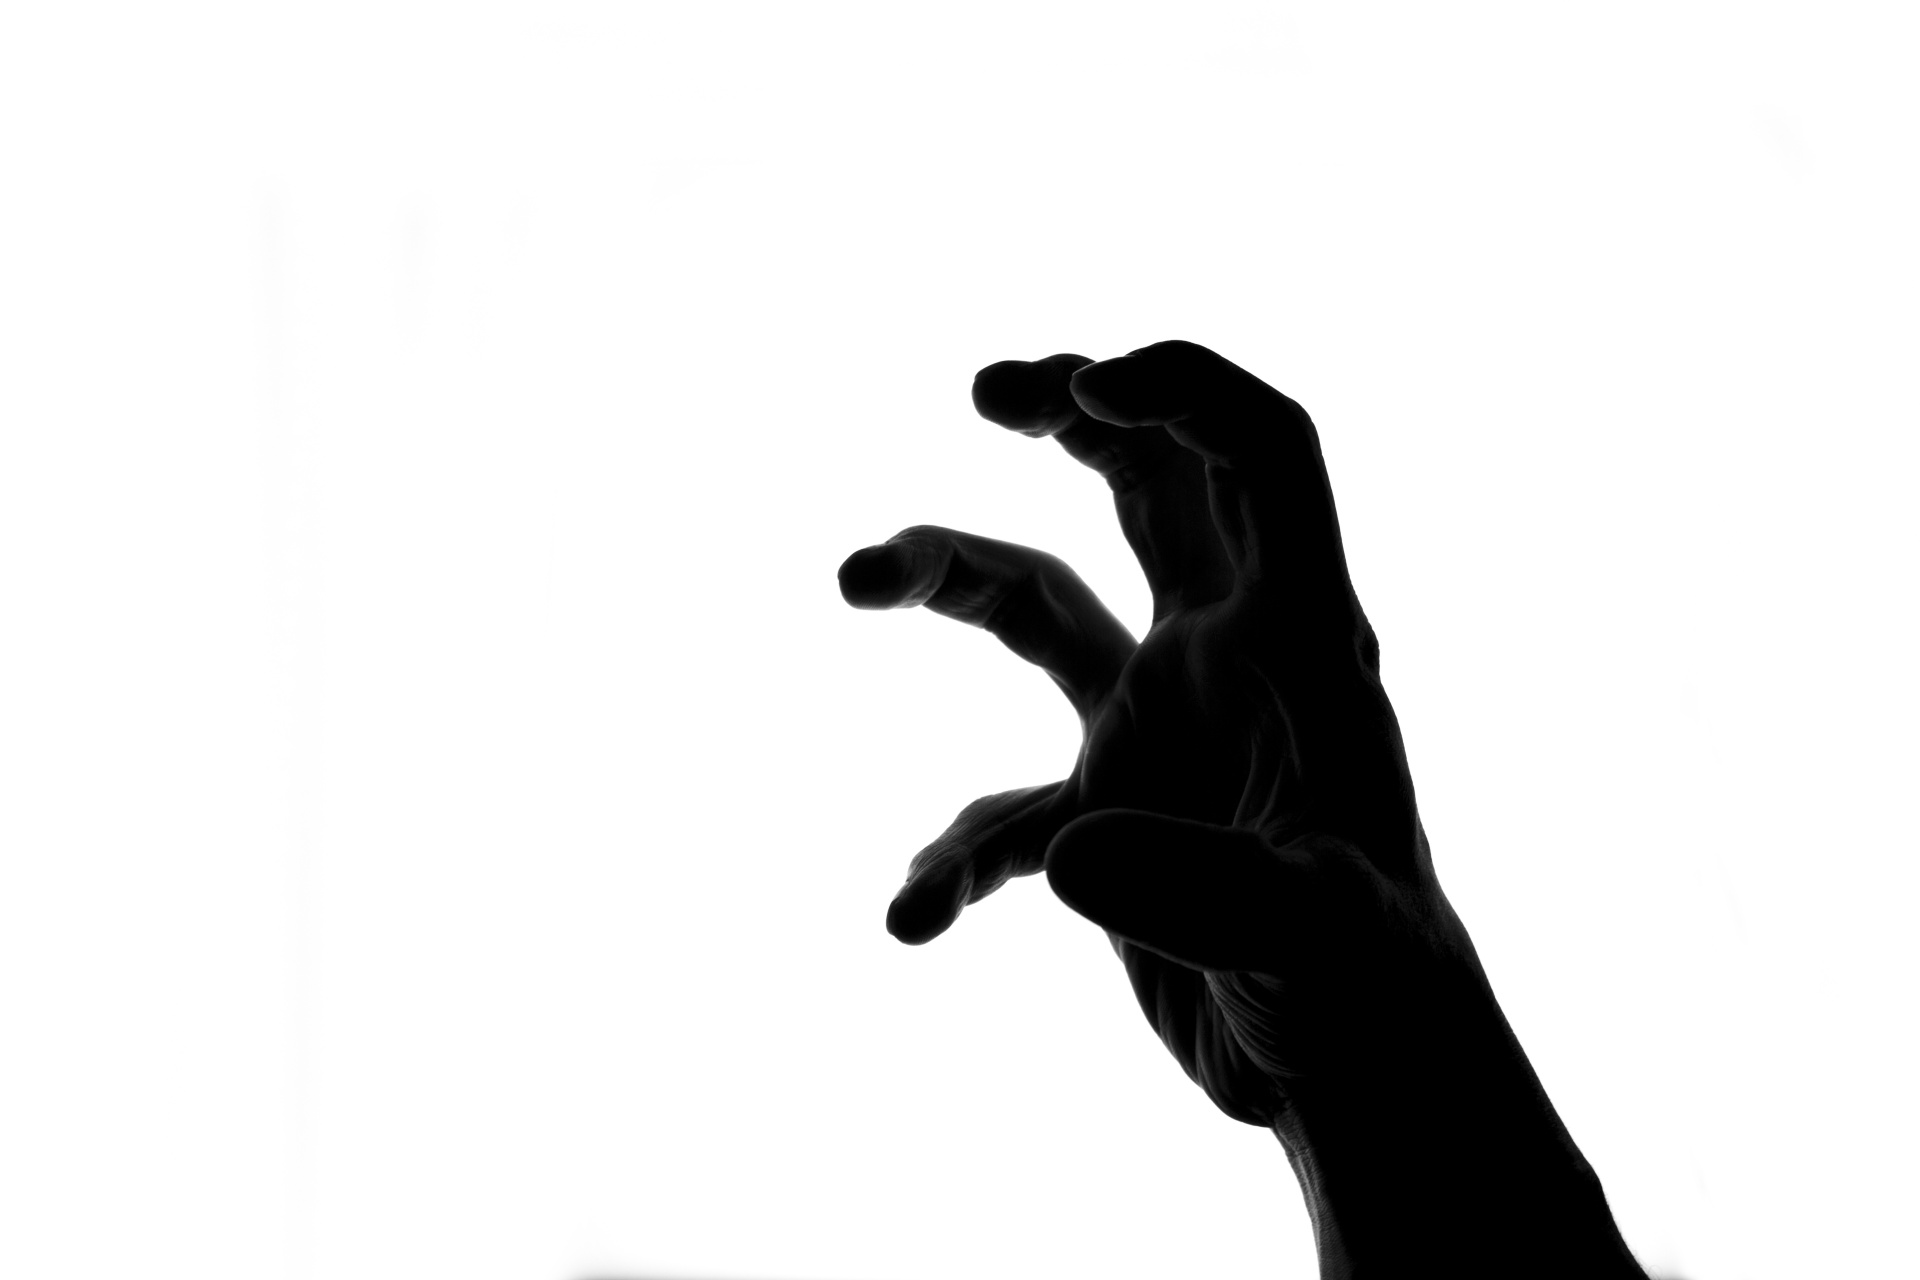 1920x1280 Silhouette Of Scary Hand Free Stock Photo